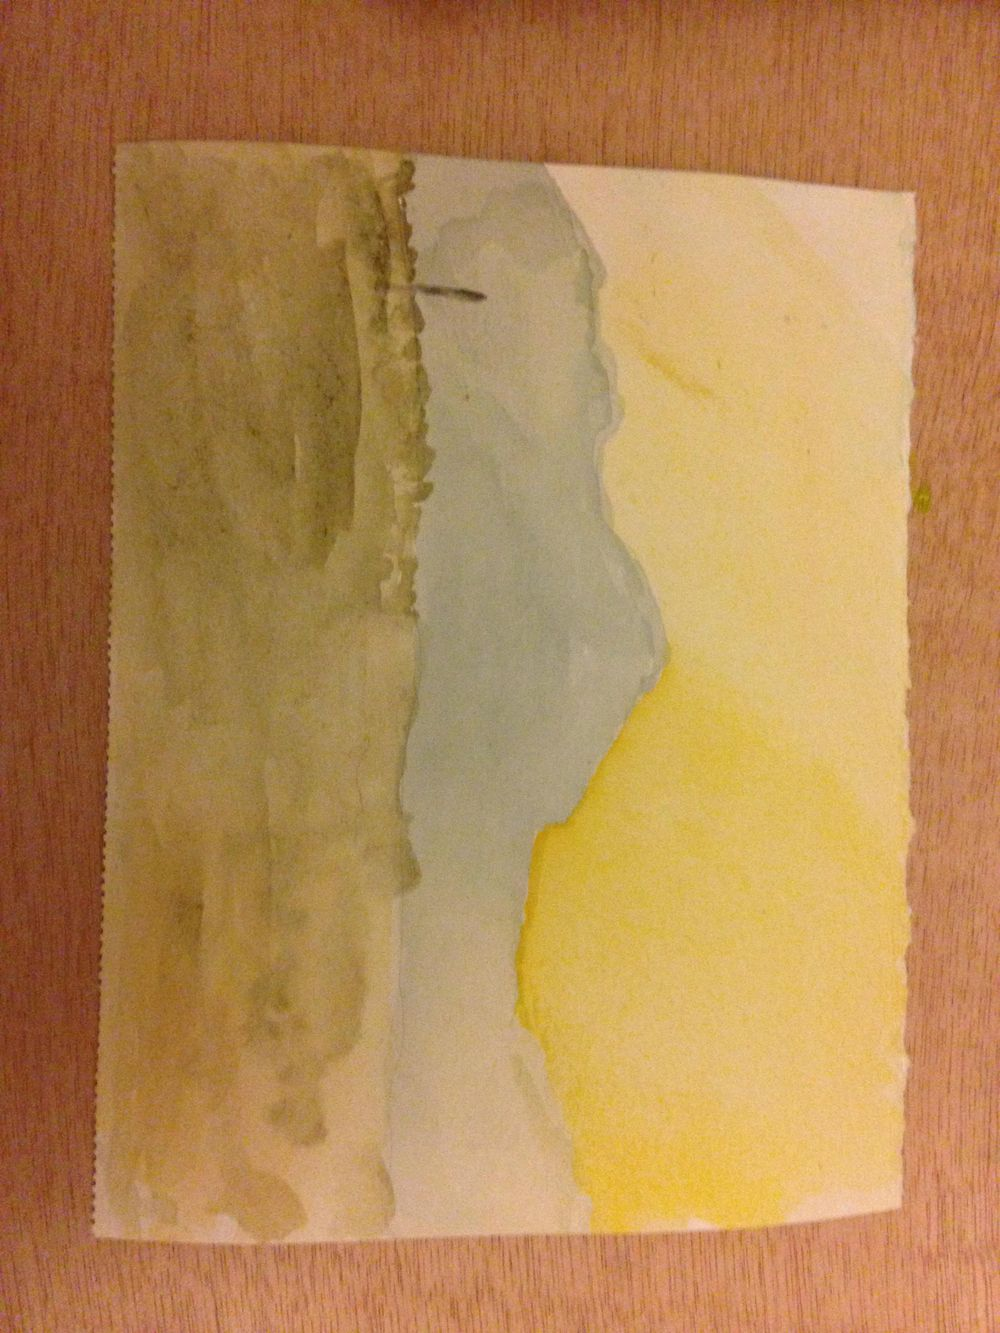 Water Color Study of the things I love most  - image 3 - student project